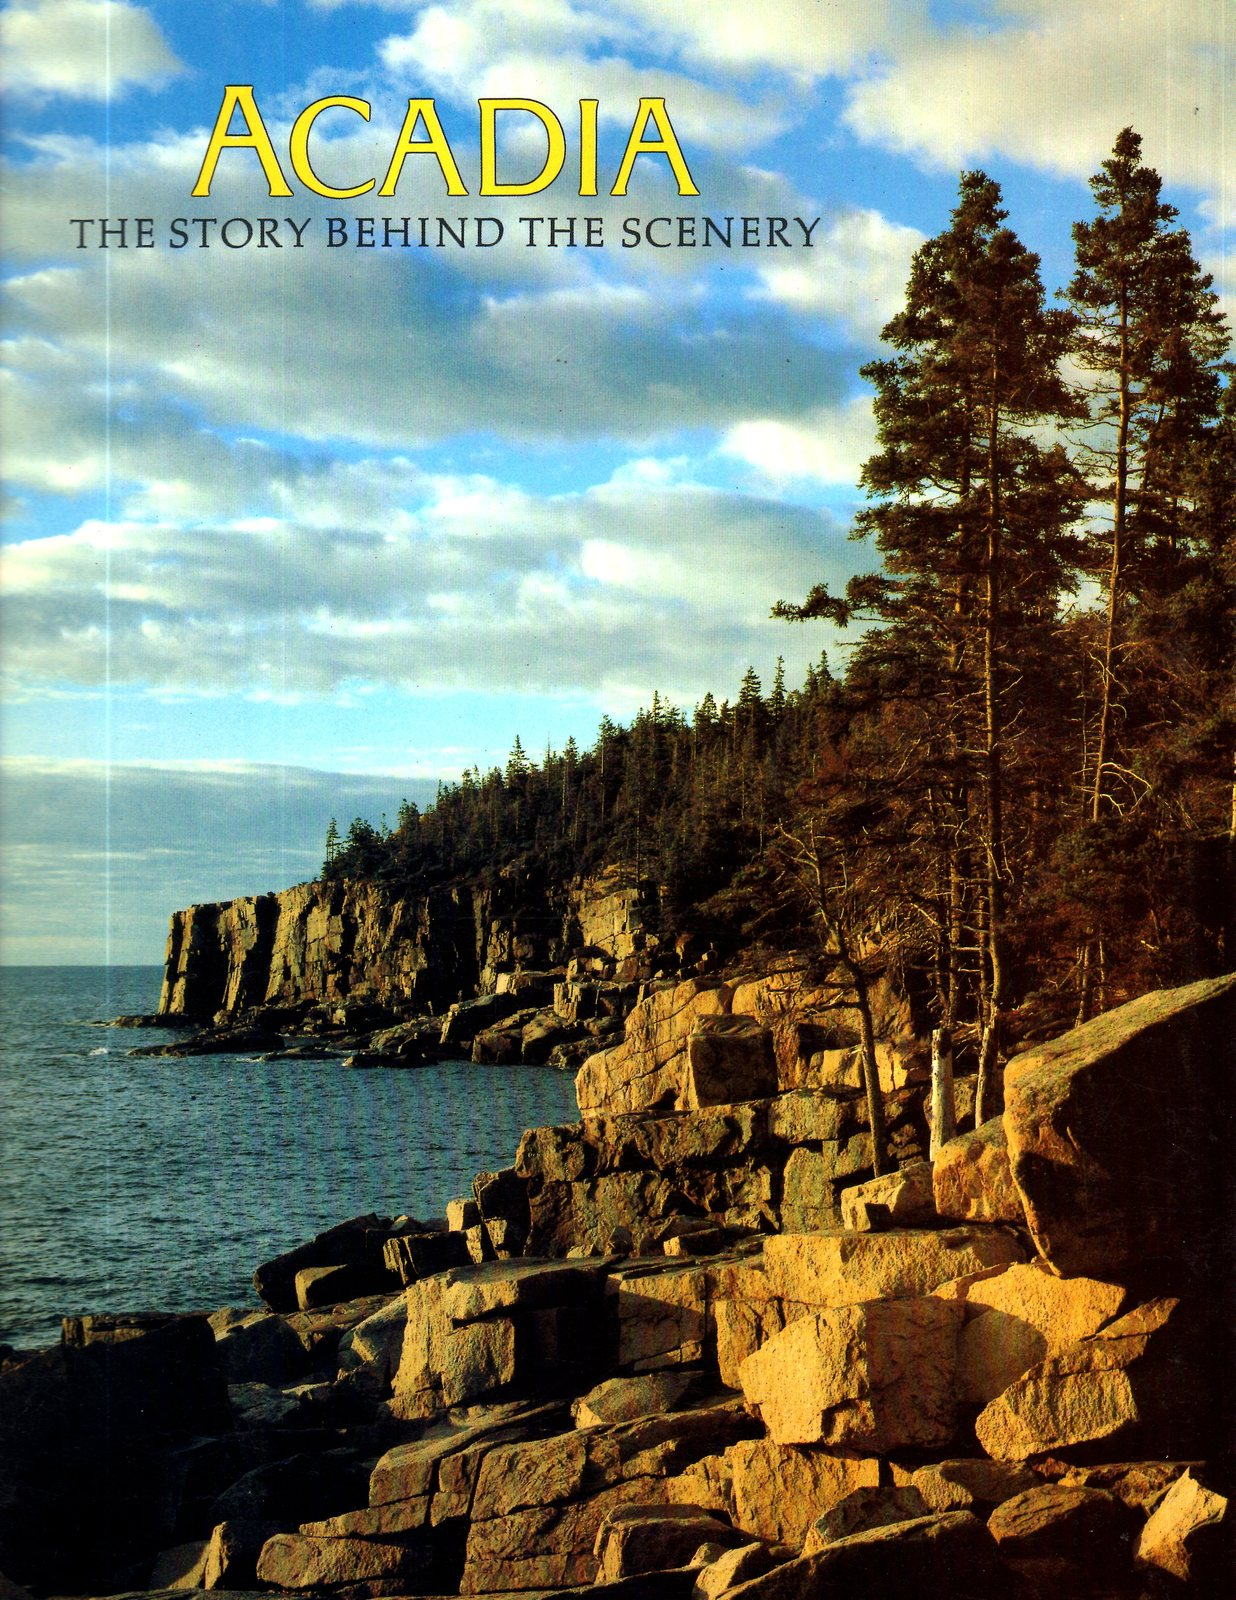 ACADIA The Story Behind The Scenery (Travel Book) image 2